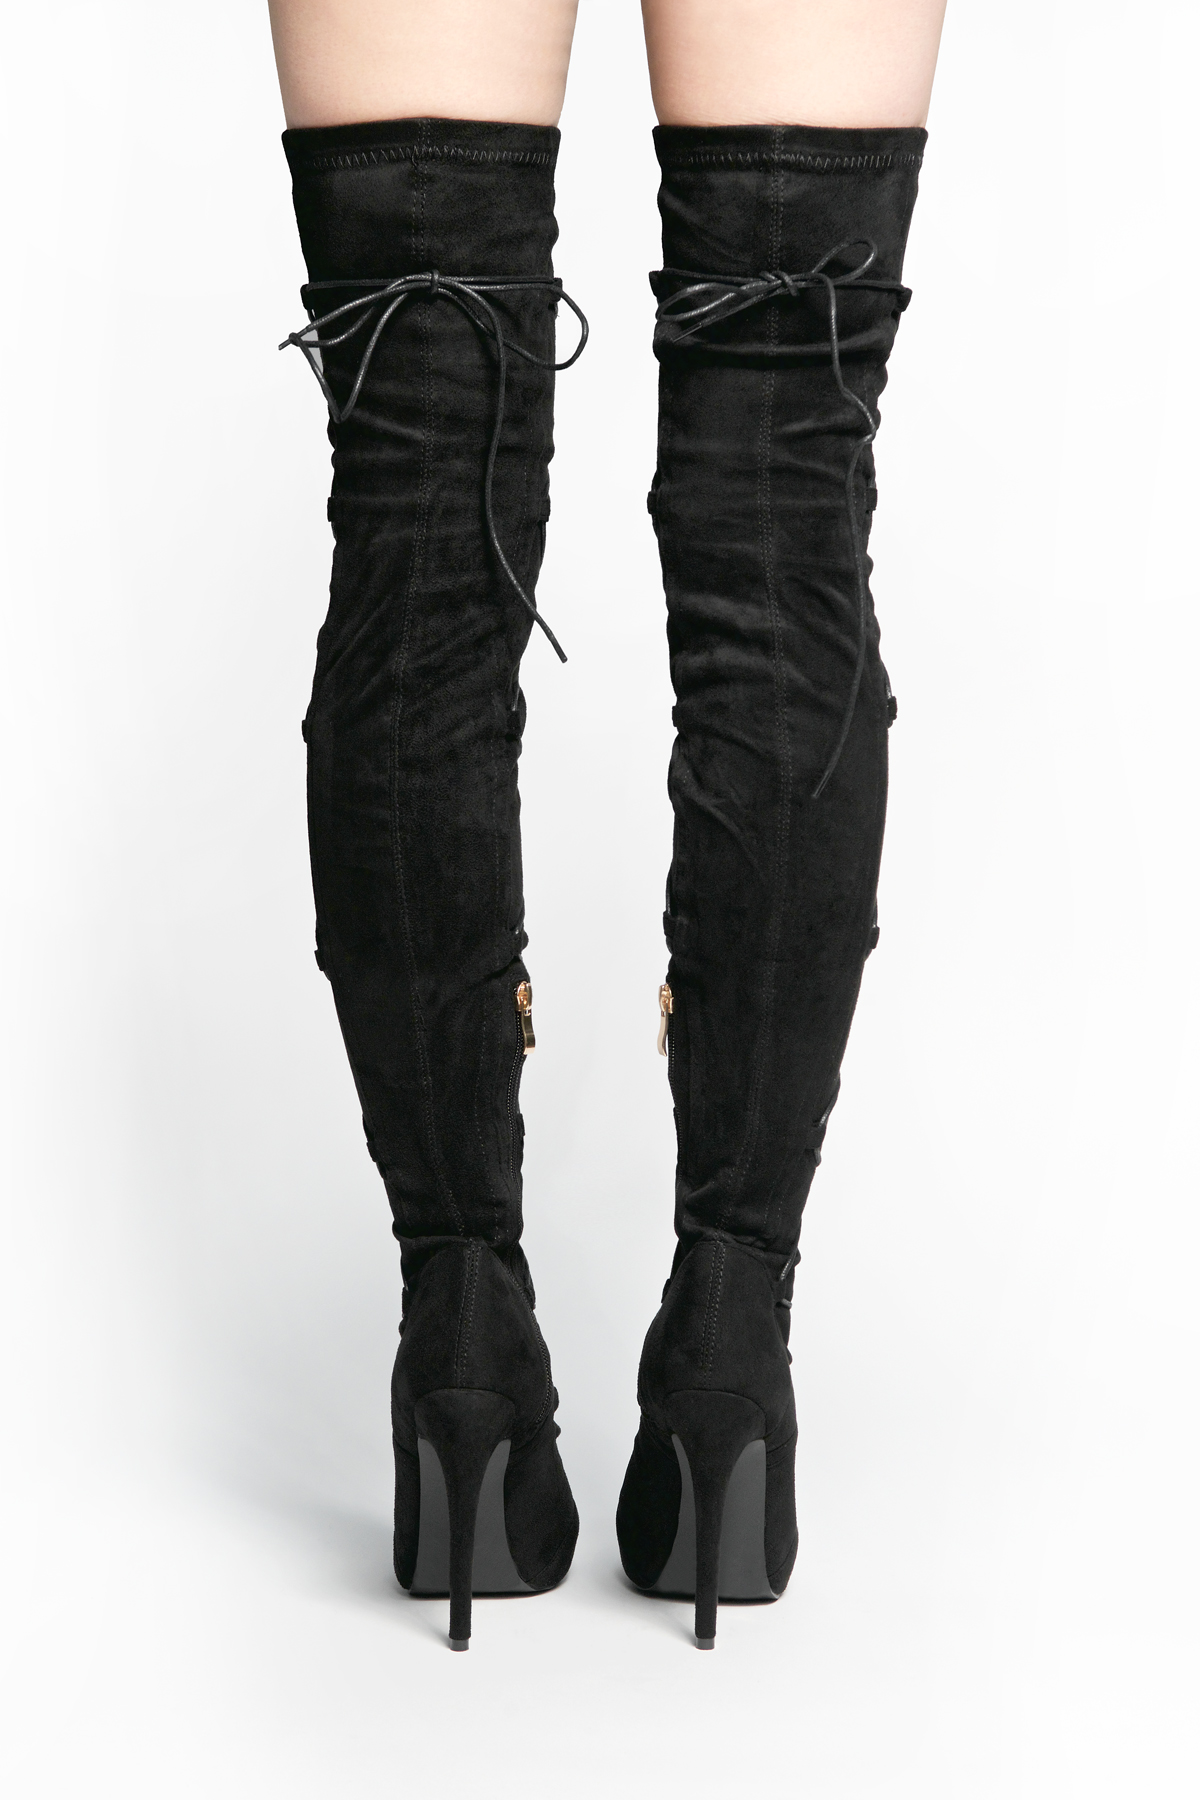 09d6f59b4d4 HerStyle Freyya a peep toe, stiletto heel, thigh high Sock Boots, front  lace-up (Black)